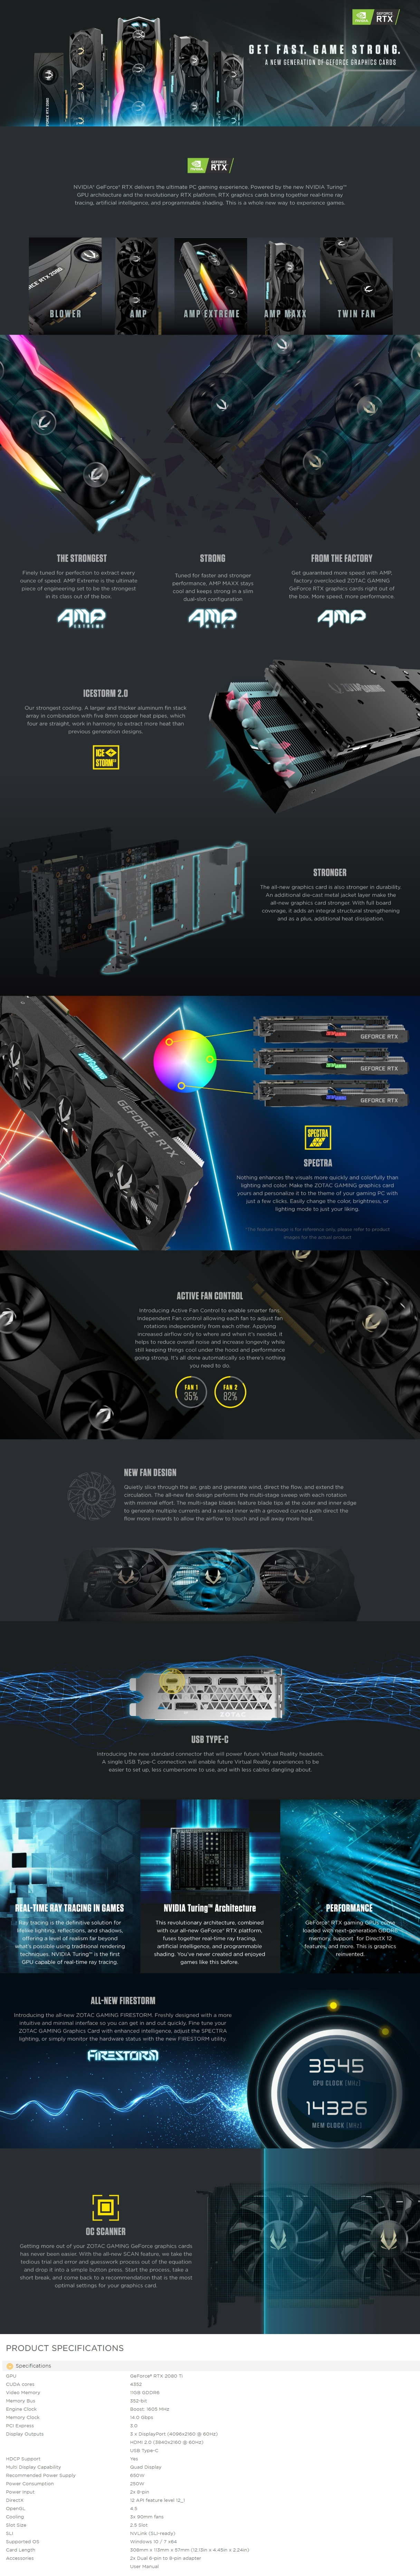 A large marketing image providing additional information about the product ZOTAC GAMING Geforce RTX2080Ti Triple Fan 11GB GDDR6 - Additional alt info not provided